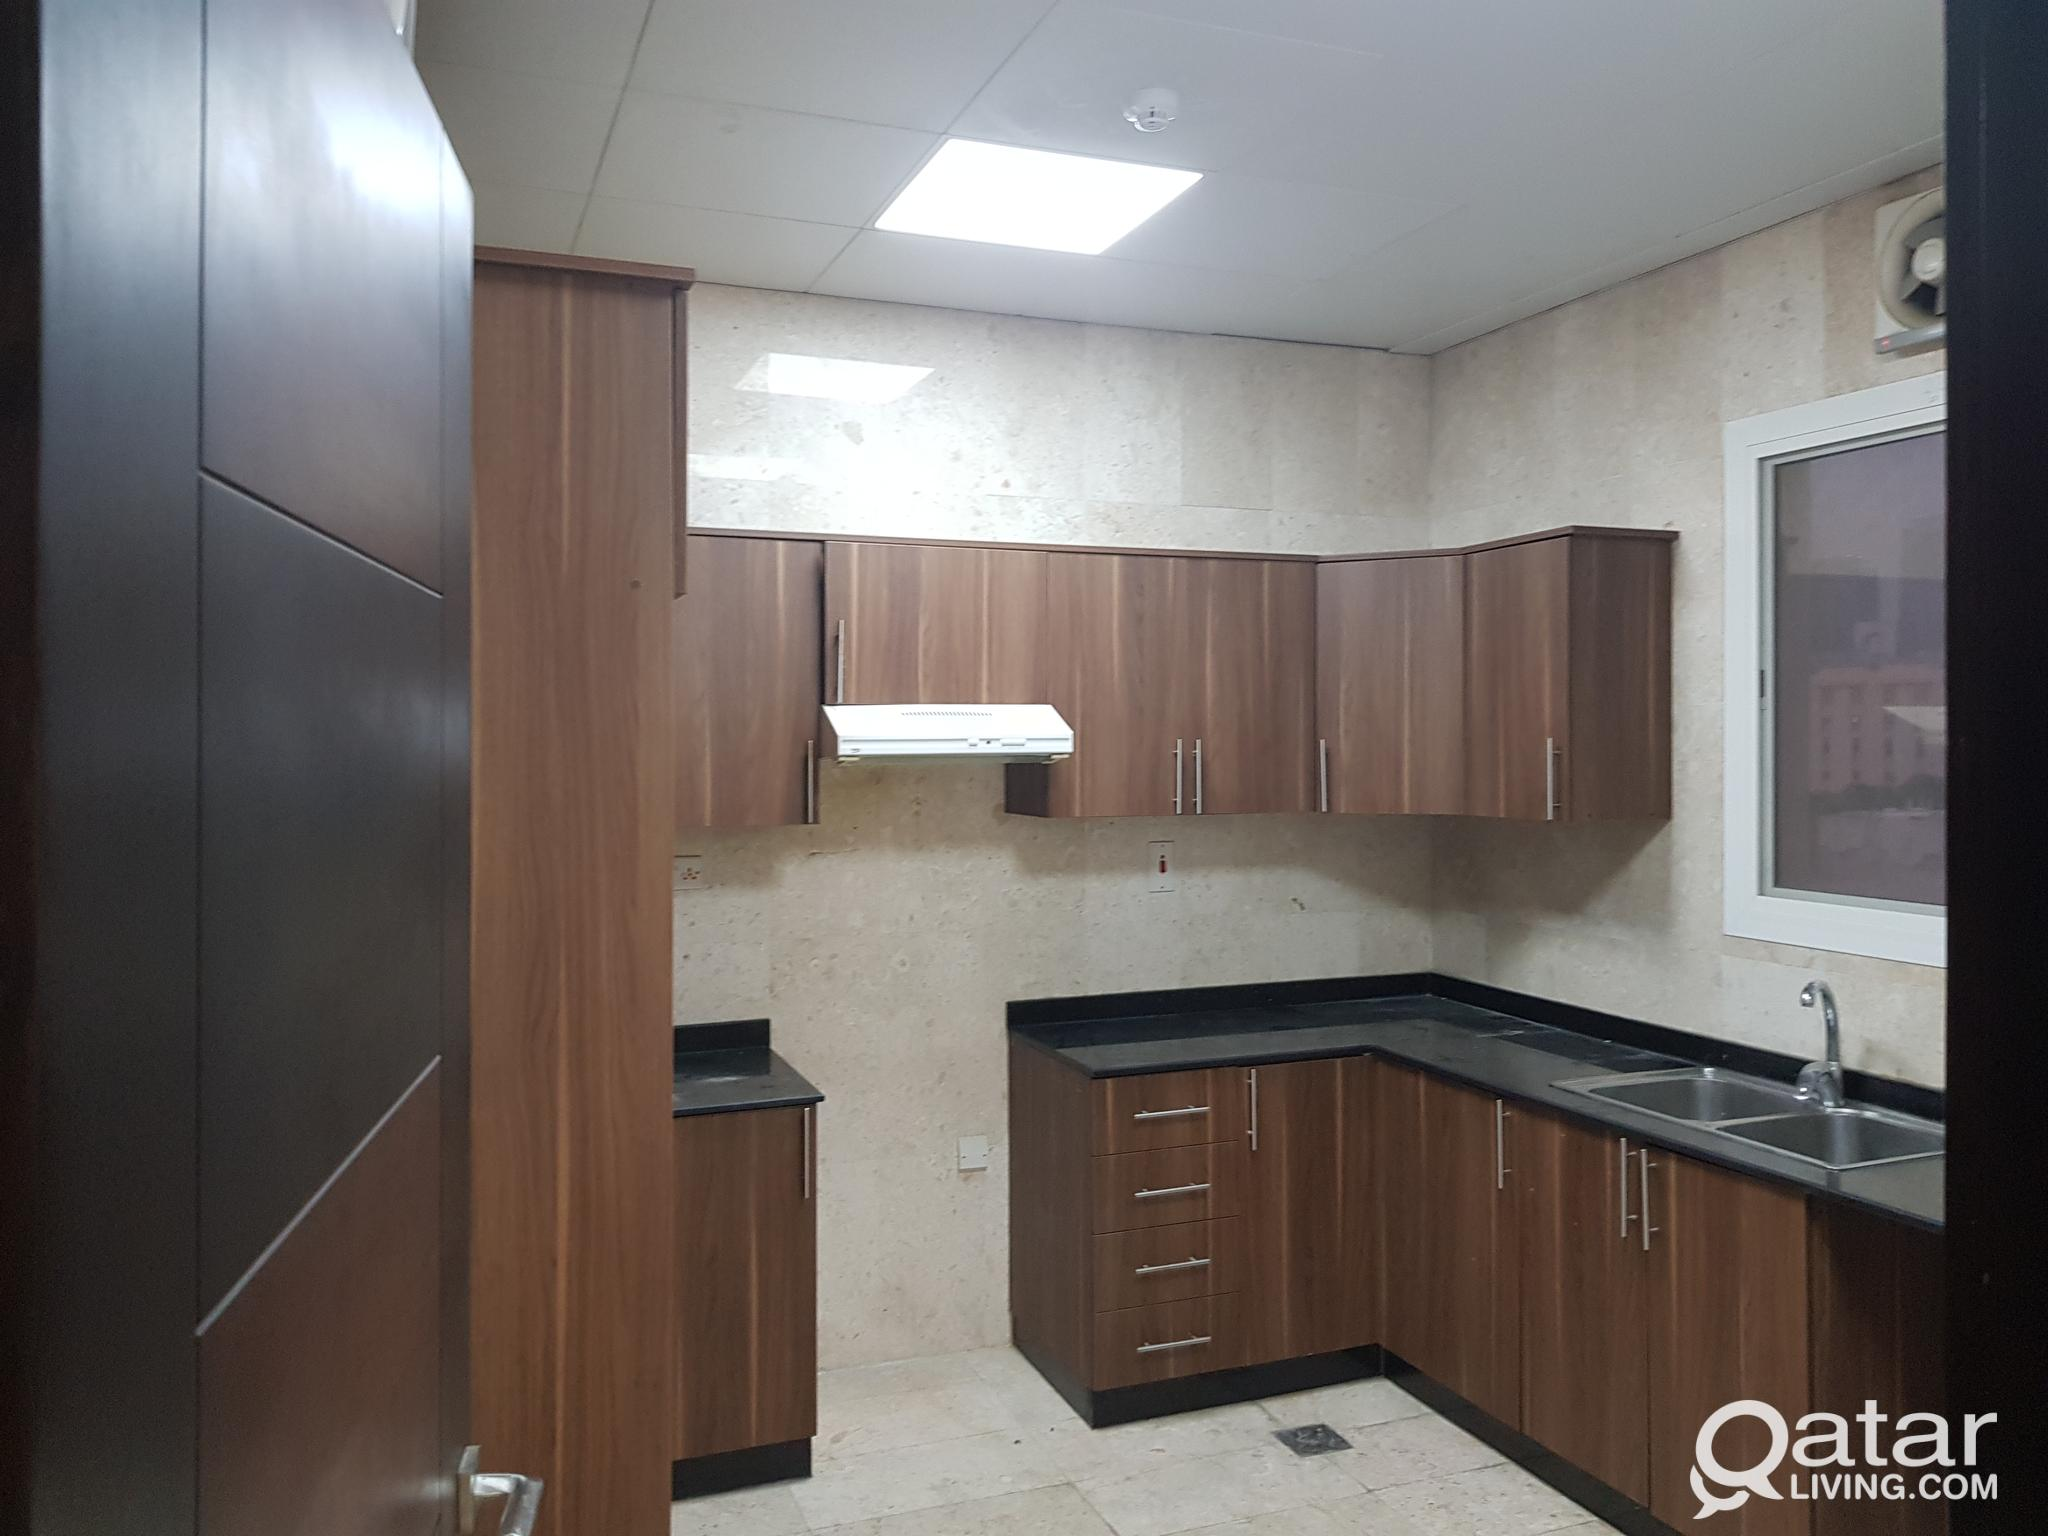 Apartment at alnasar 3bhk super lux new 6000 qr شق